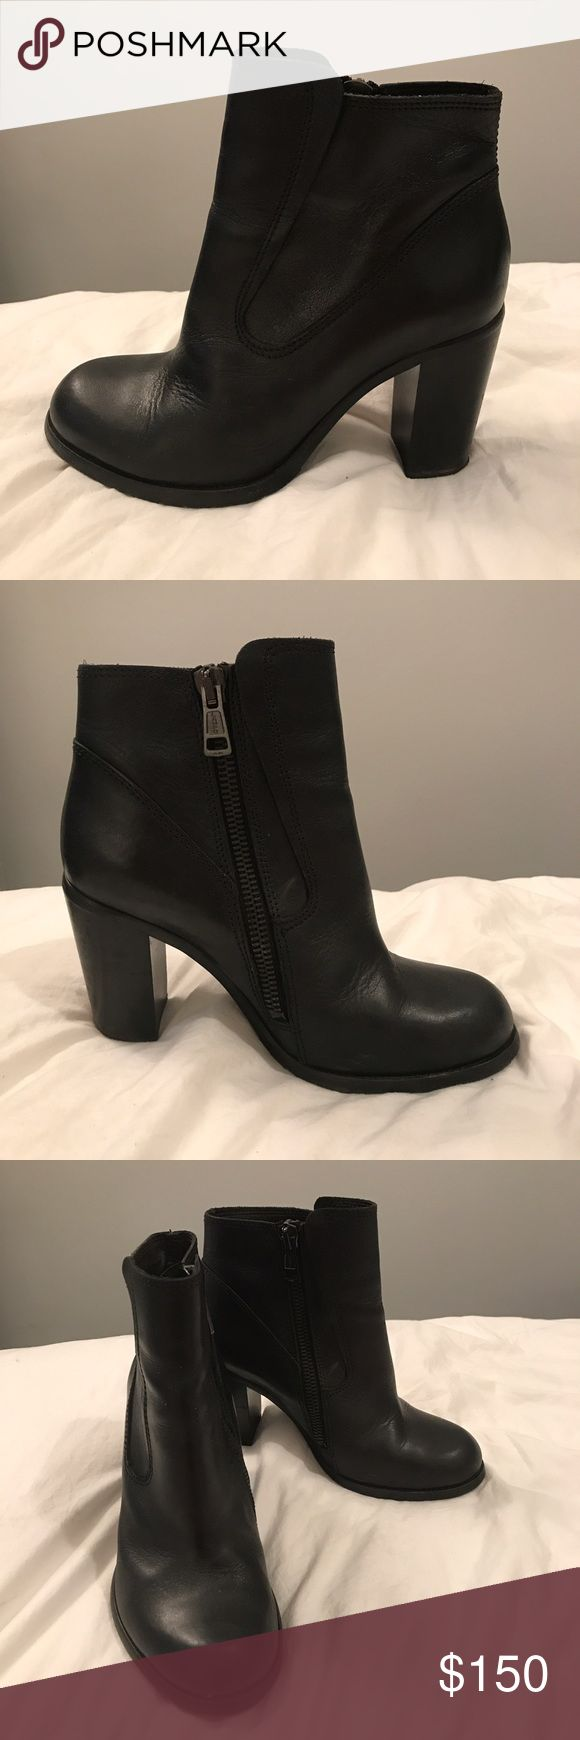 ALLSAINTS Leather Chelsea Heeled Boots Mint-condition AllSaints boots with high quality leather, hardware, and craftsmanship. Super elegant but edgy, they'll never go out of style! Listed as a size 41 but they fit me (I'm a size 9.) All Saints Shoes Ankle Boots & Booties